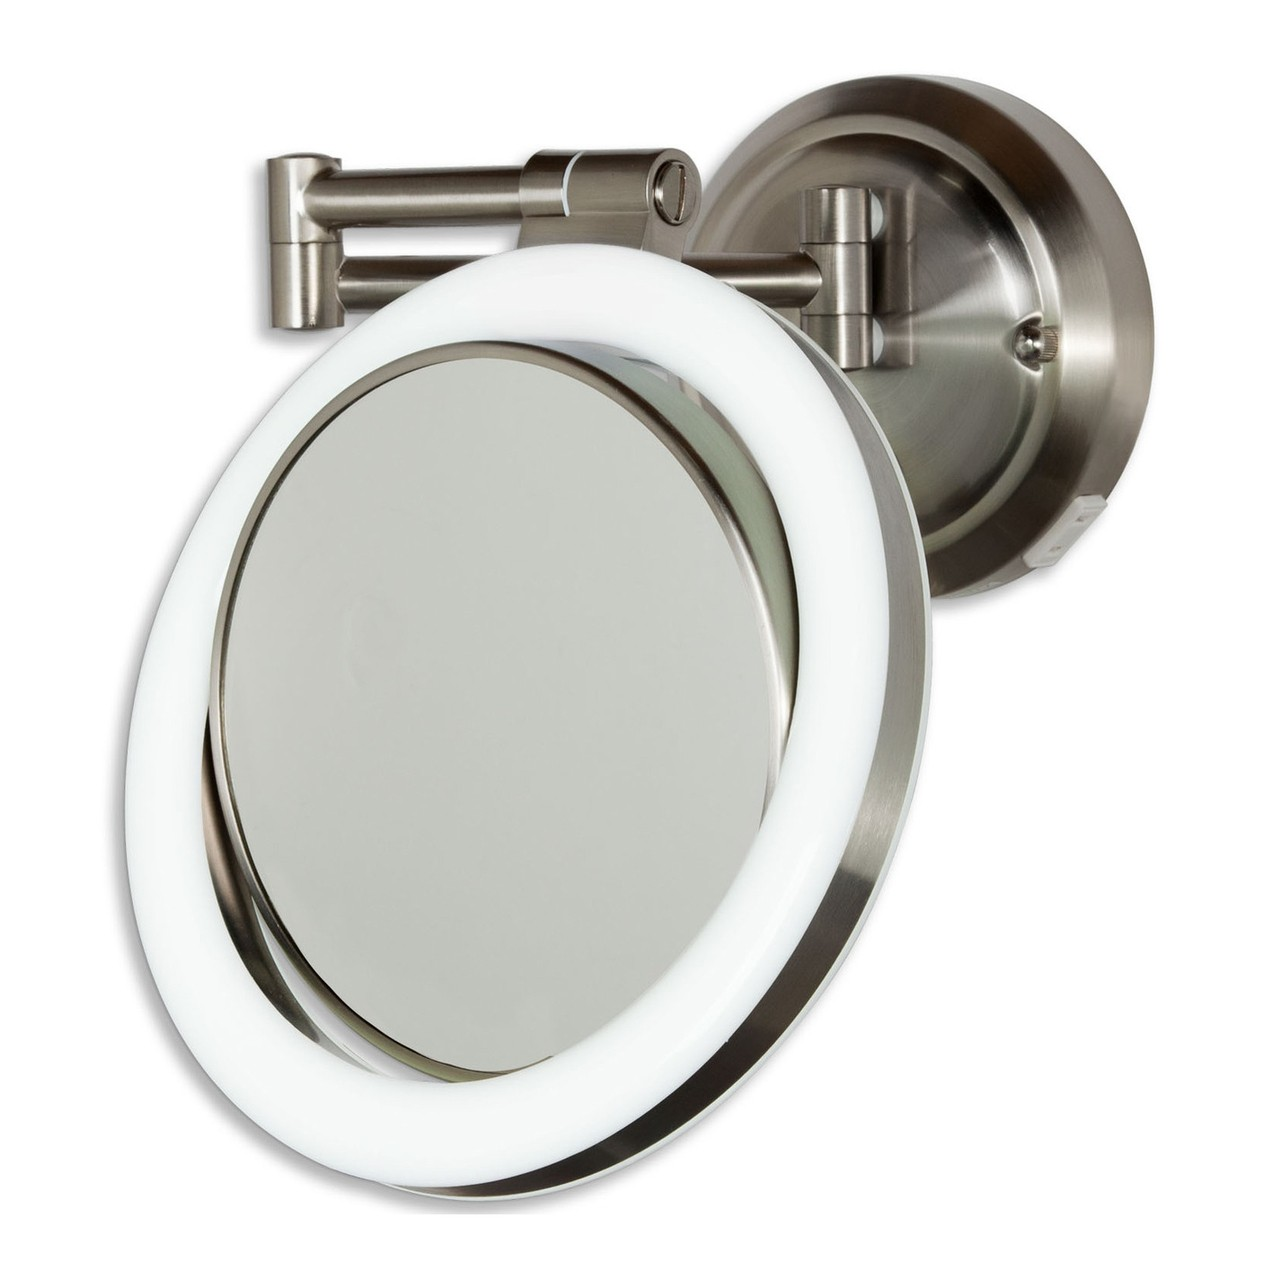 Zadro dual sided surround light swivel wall mount mirror 1x10x amipublicfo Choice Image